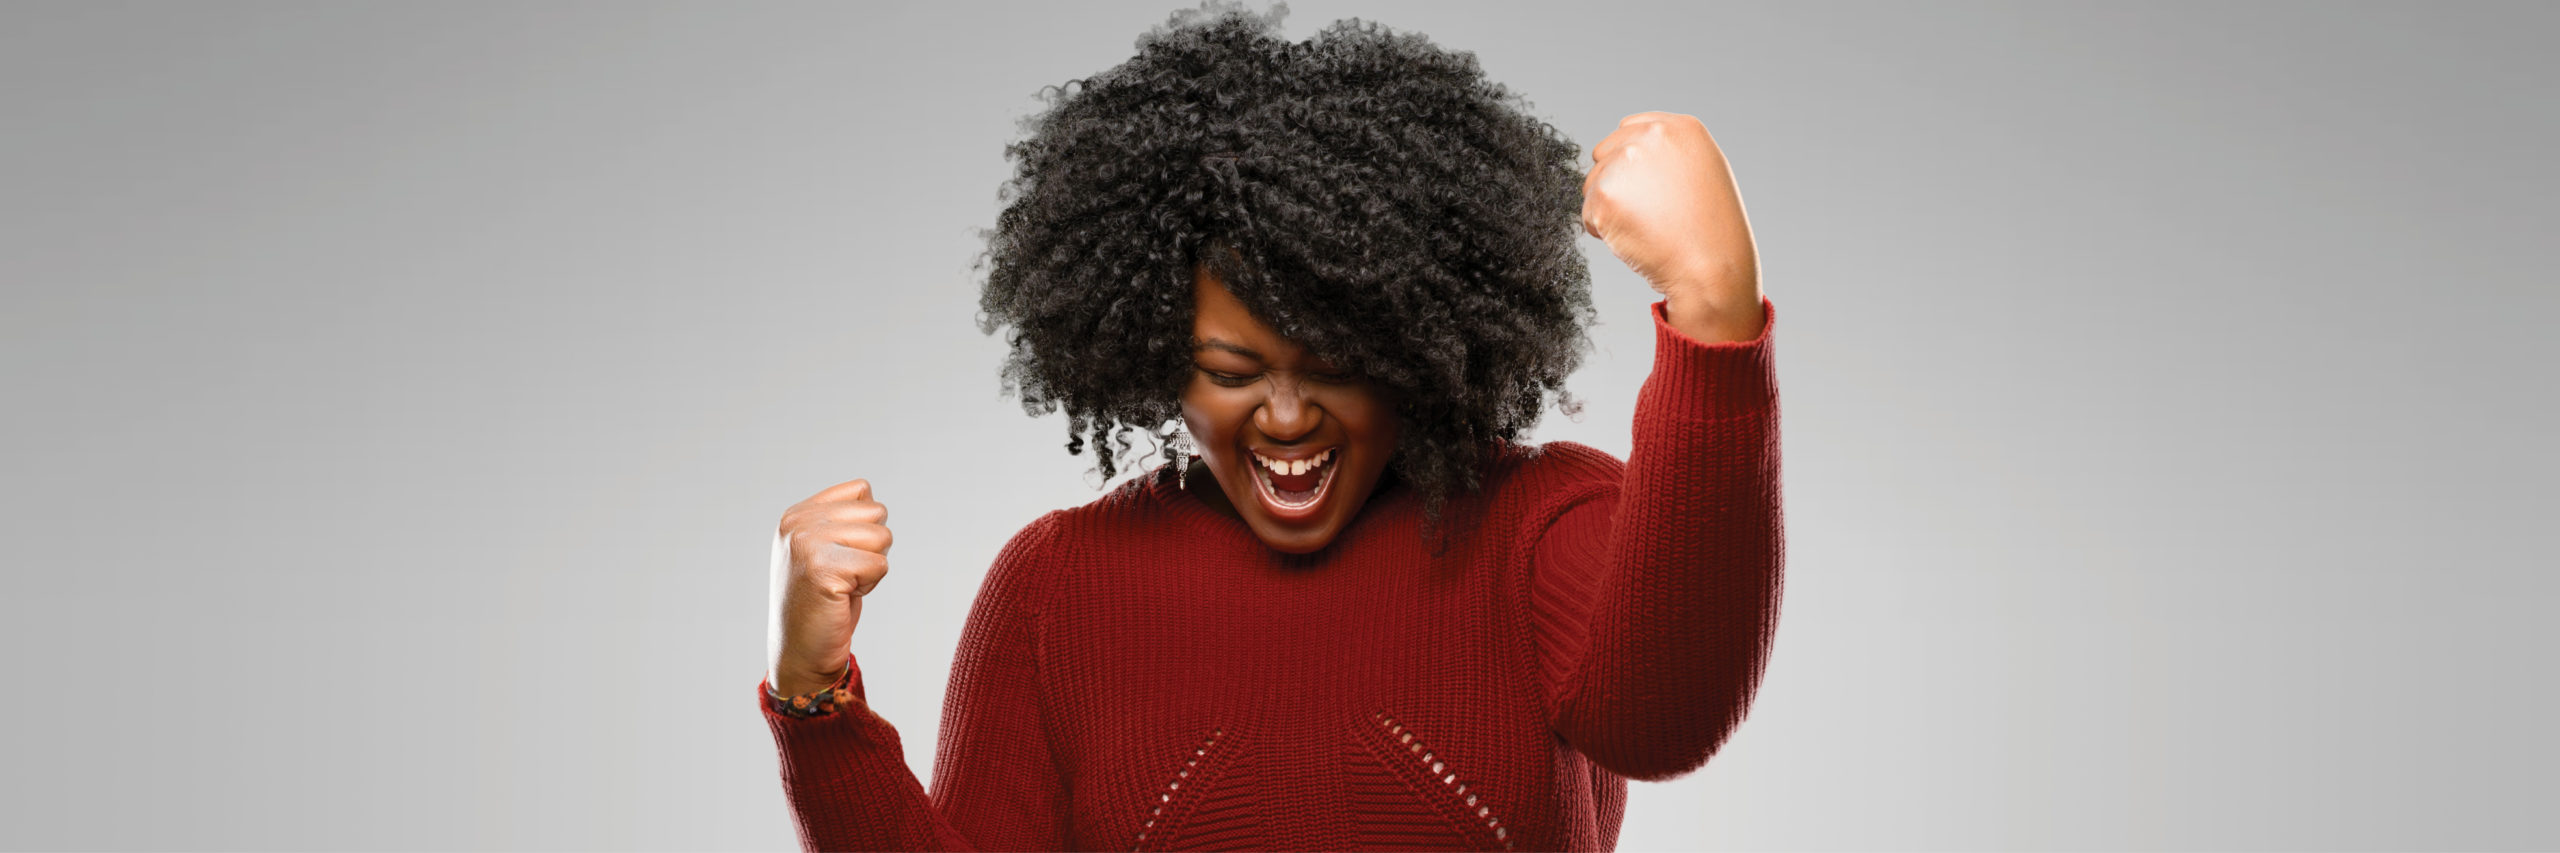 Woman excited and happy with fists in the air